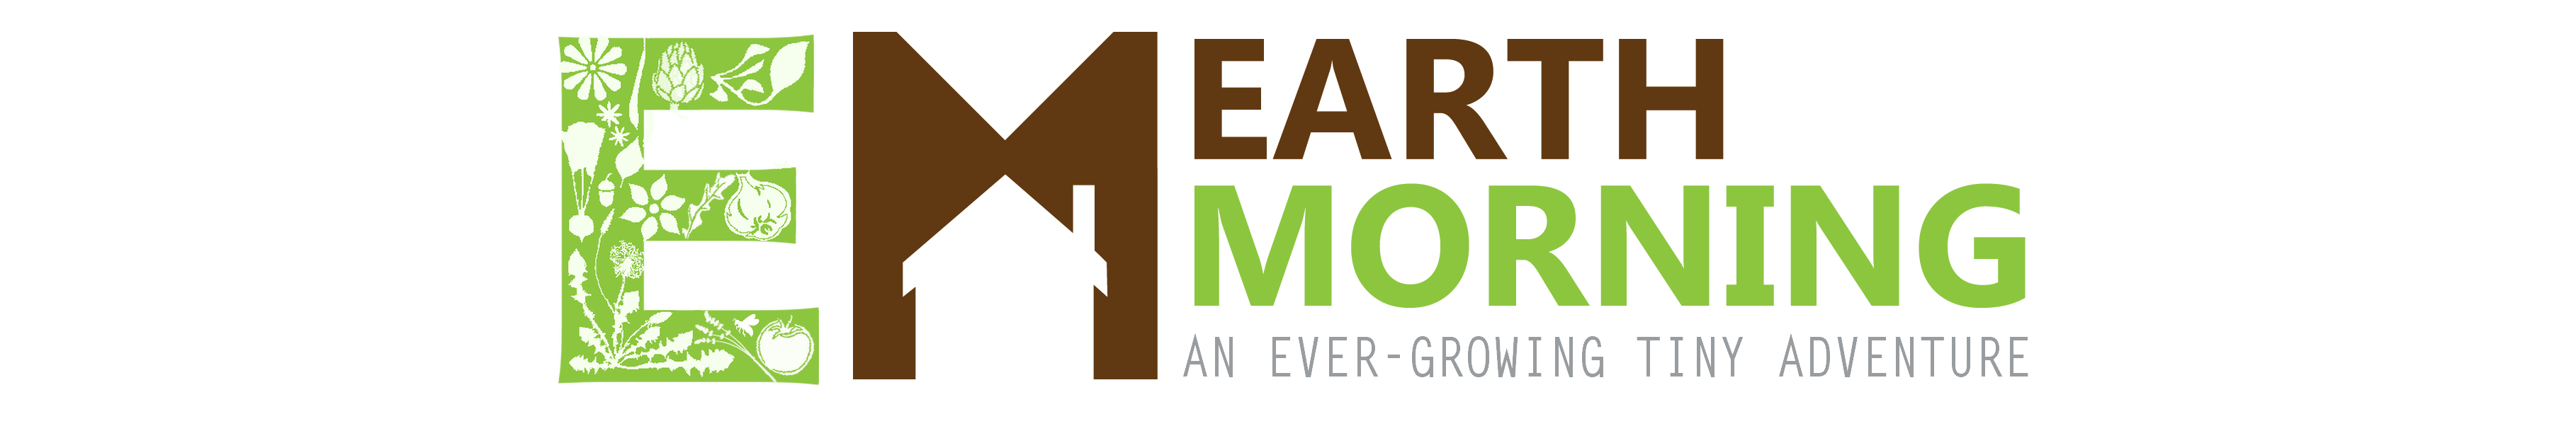 Earth Morning: an ever-growing tiny adventure